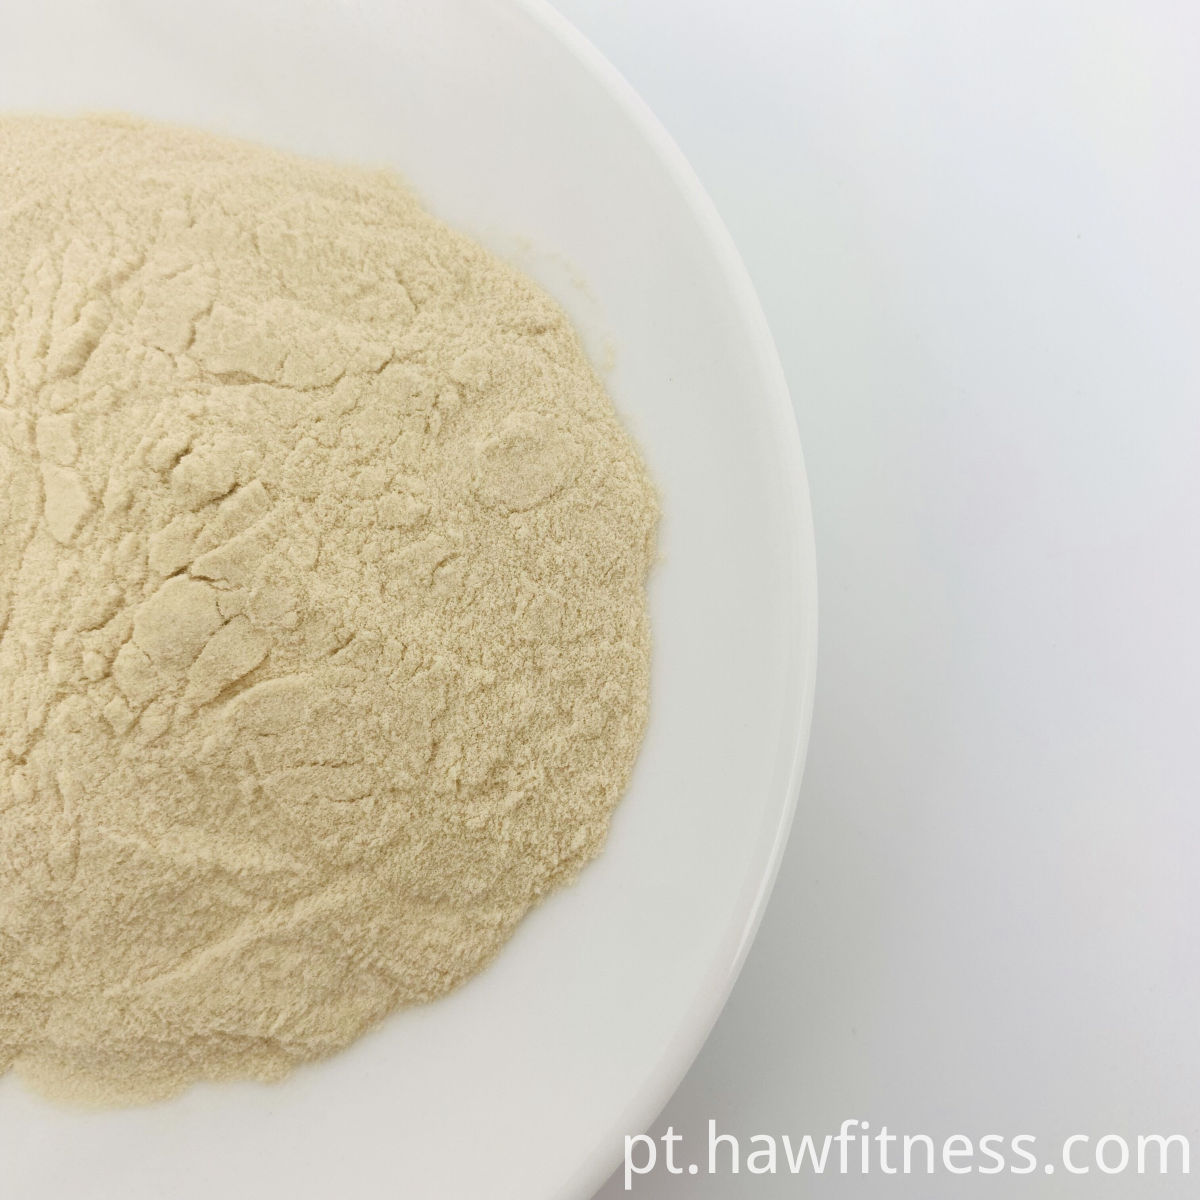 Tuckahoe Extract Powder